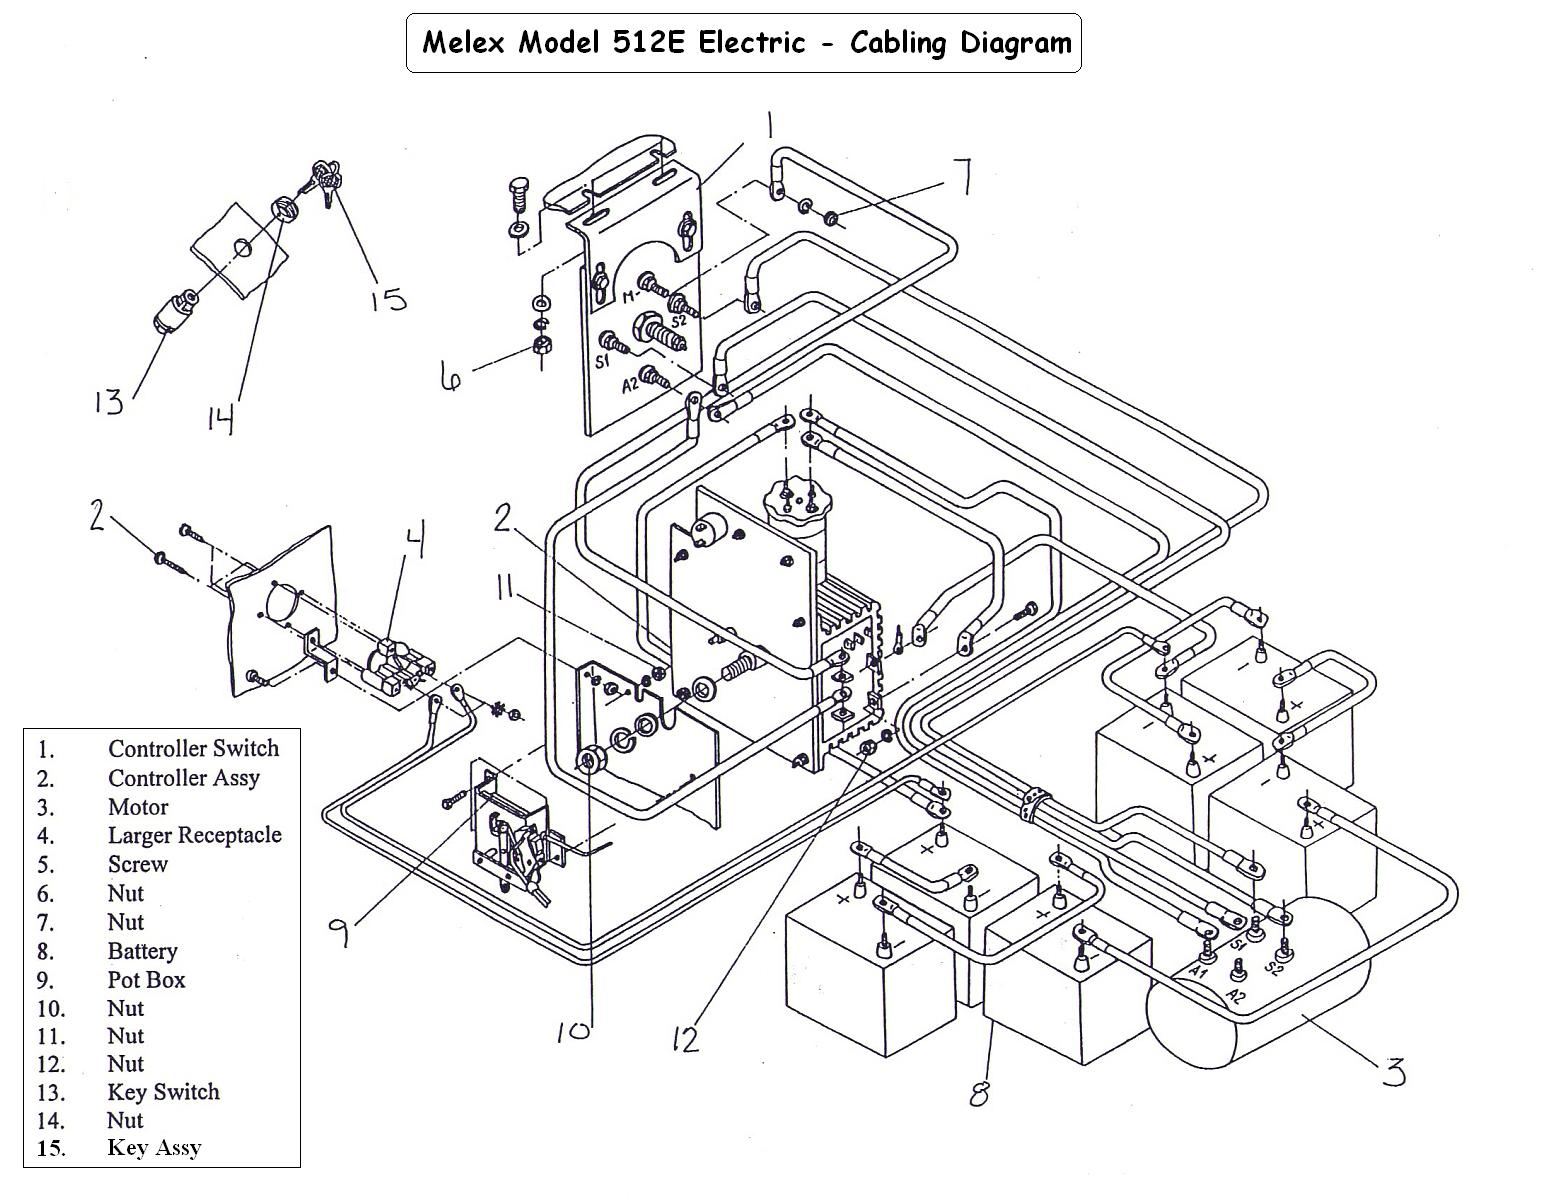 hight resolution of melex wiring diagram wiring diagram home